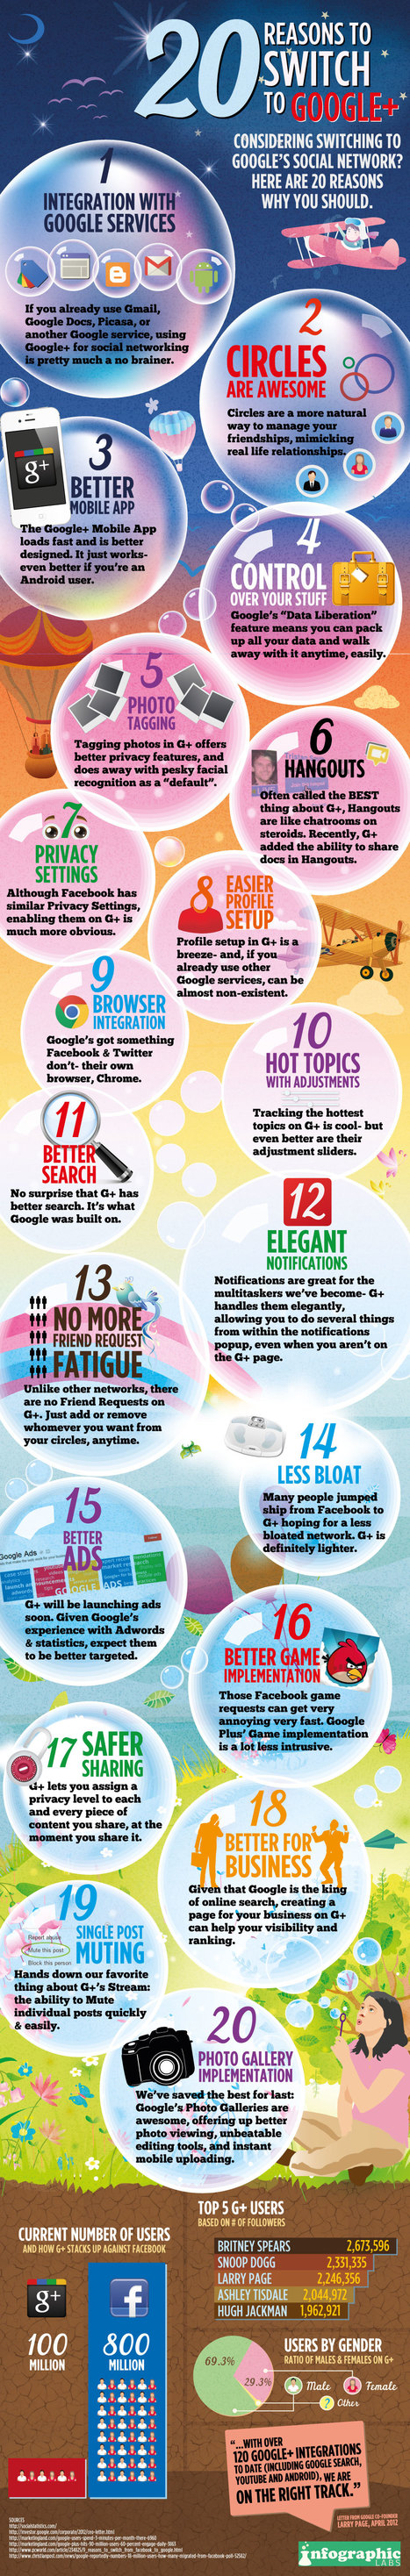 20 Reasons Why you Should Use Google Plus [Infographic] | Better know and better use Social Media today (facebook, twitter...) | Scoop.it